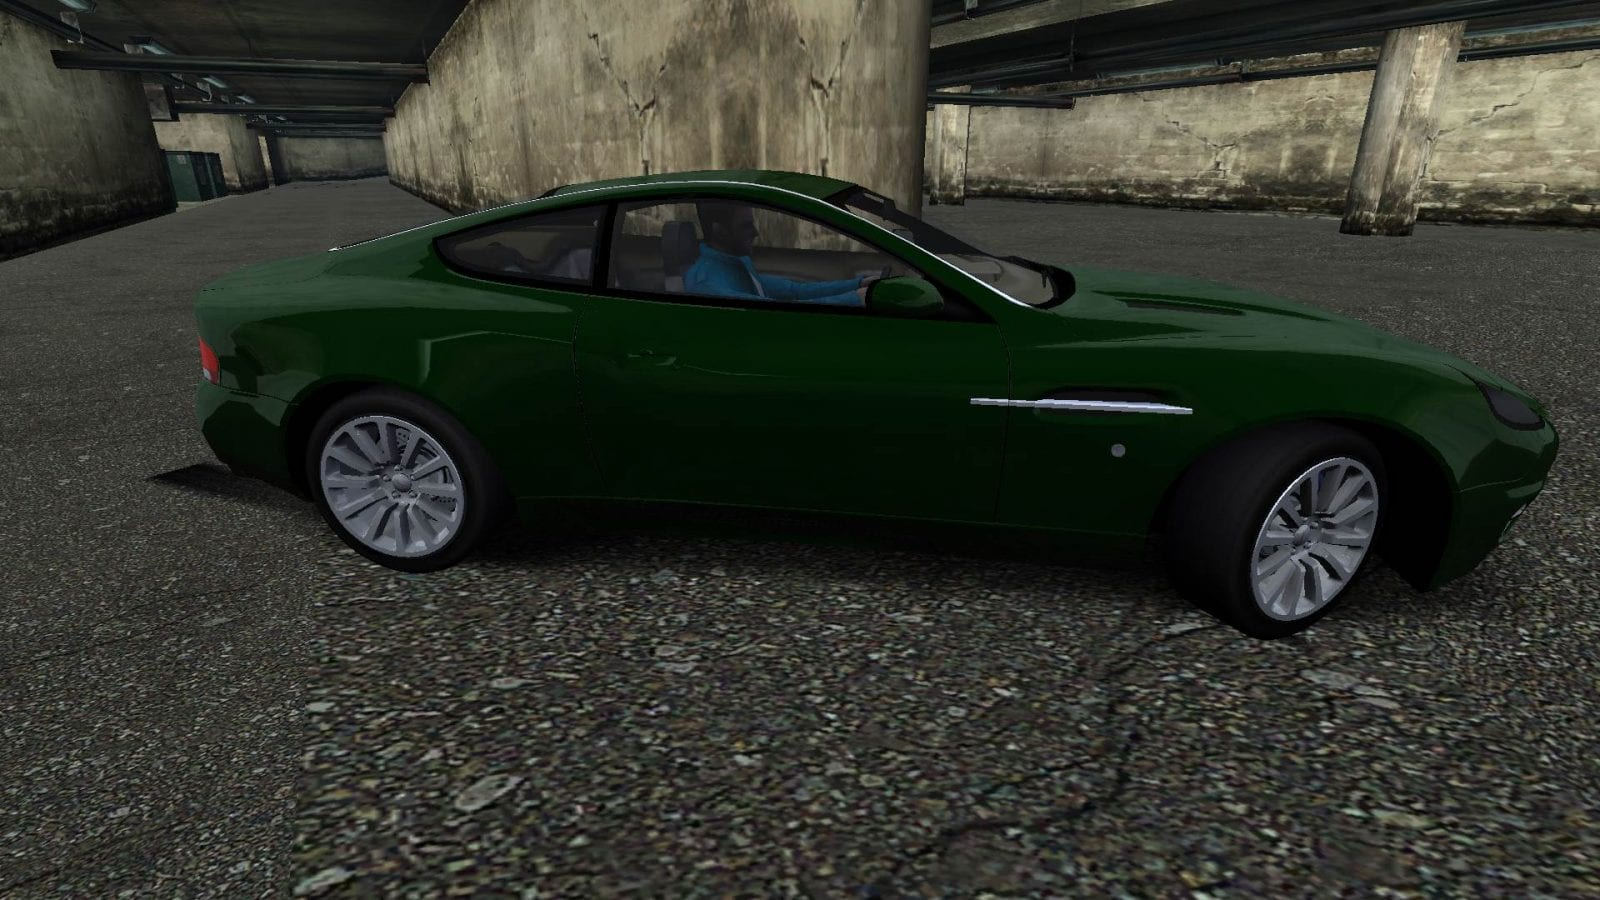 2001 Aston Martin V12 Vanquish Mod for Need For Speed Most